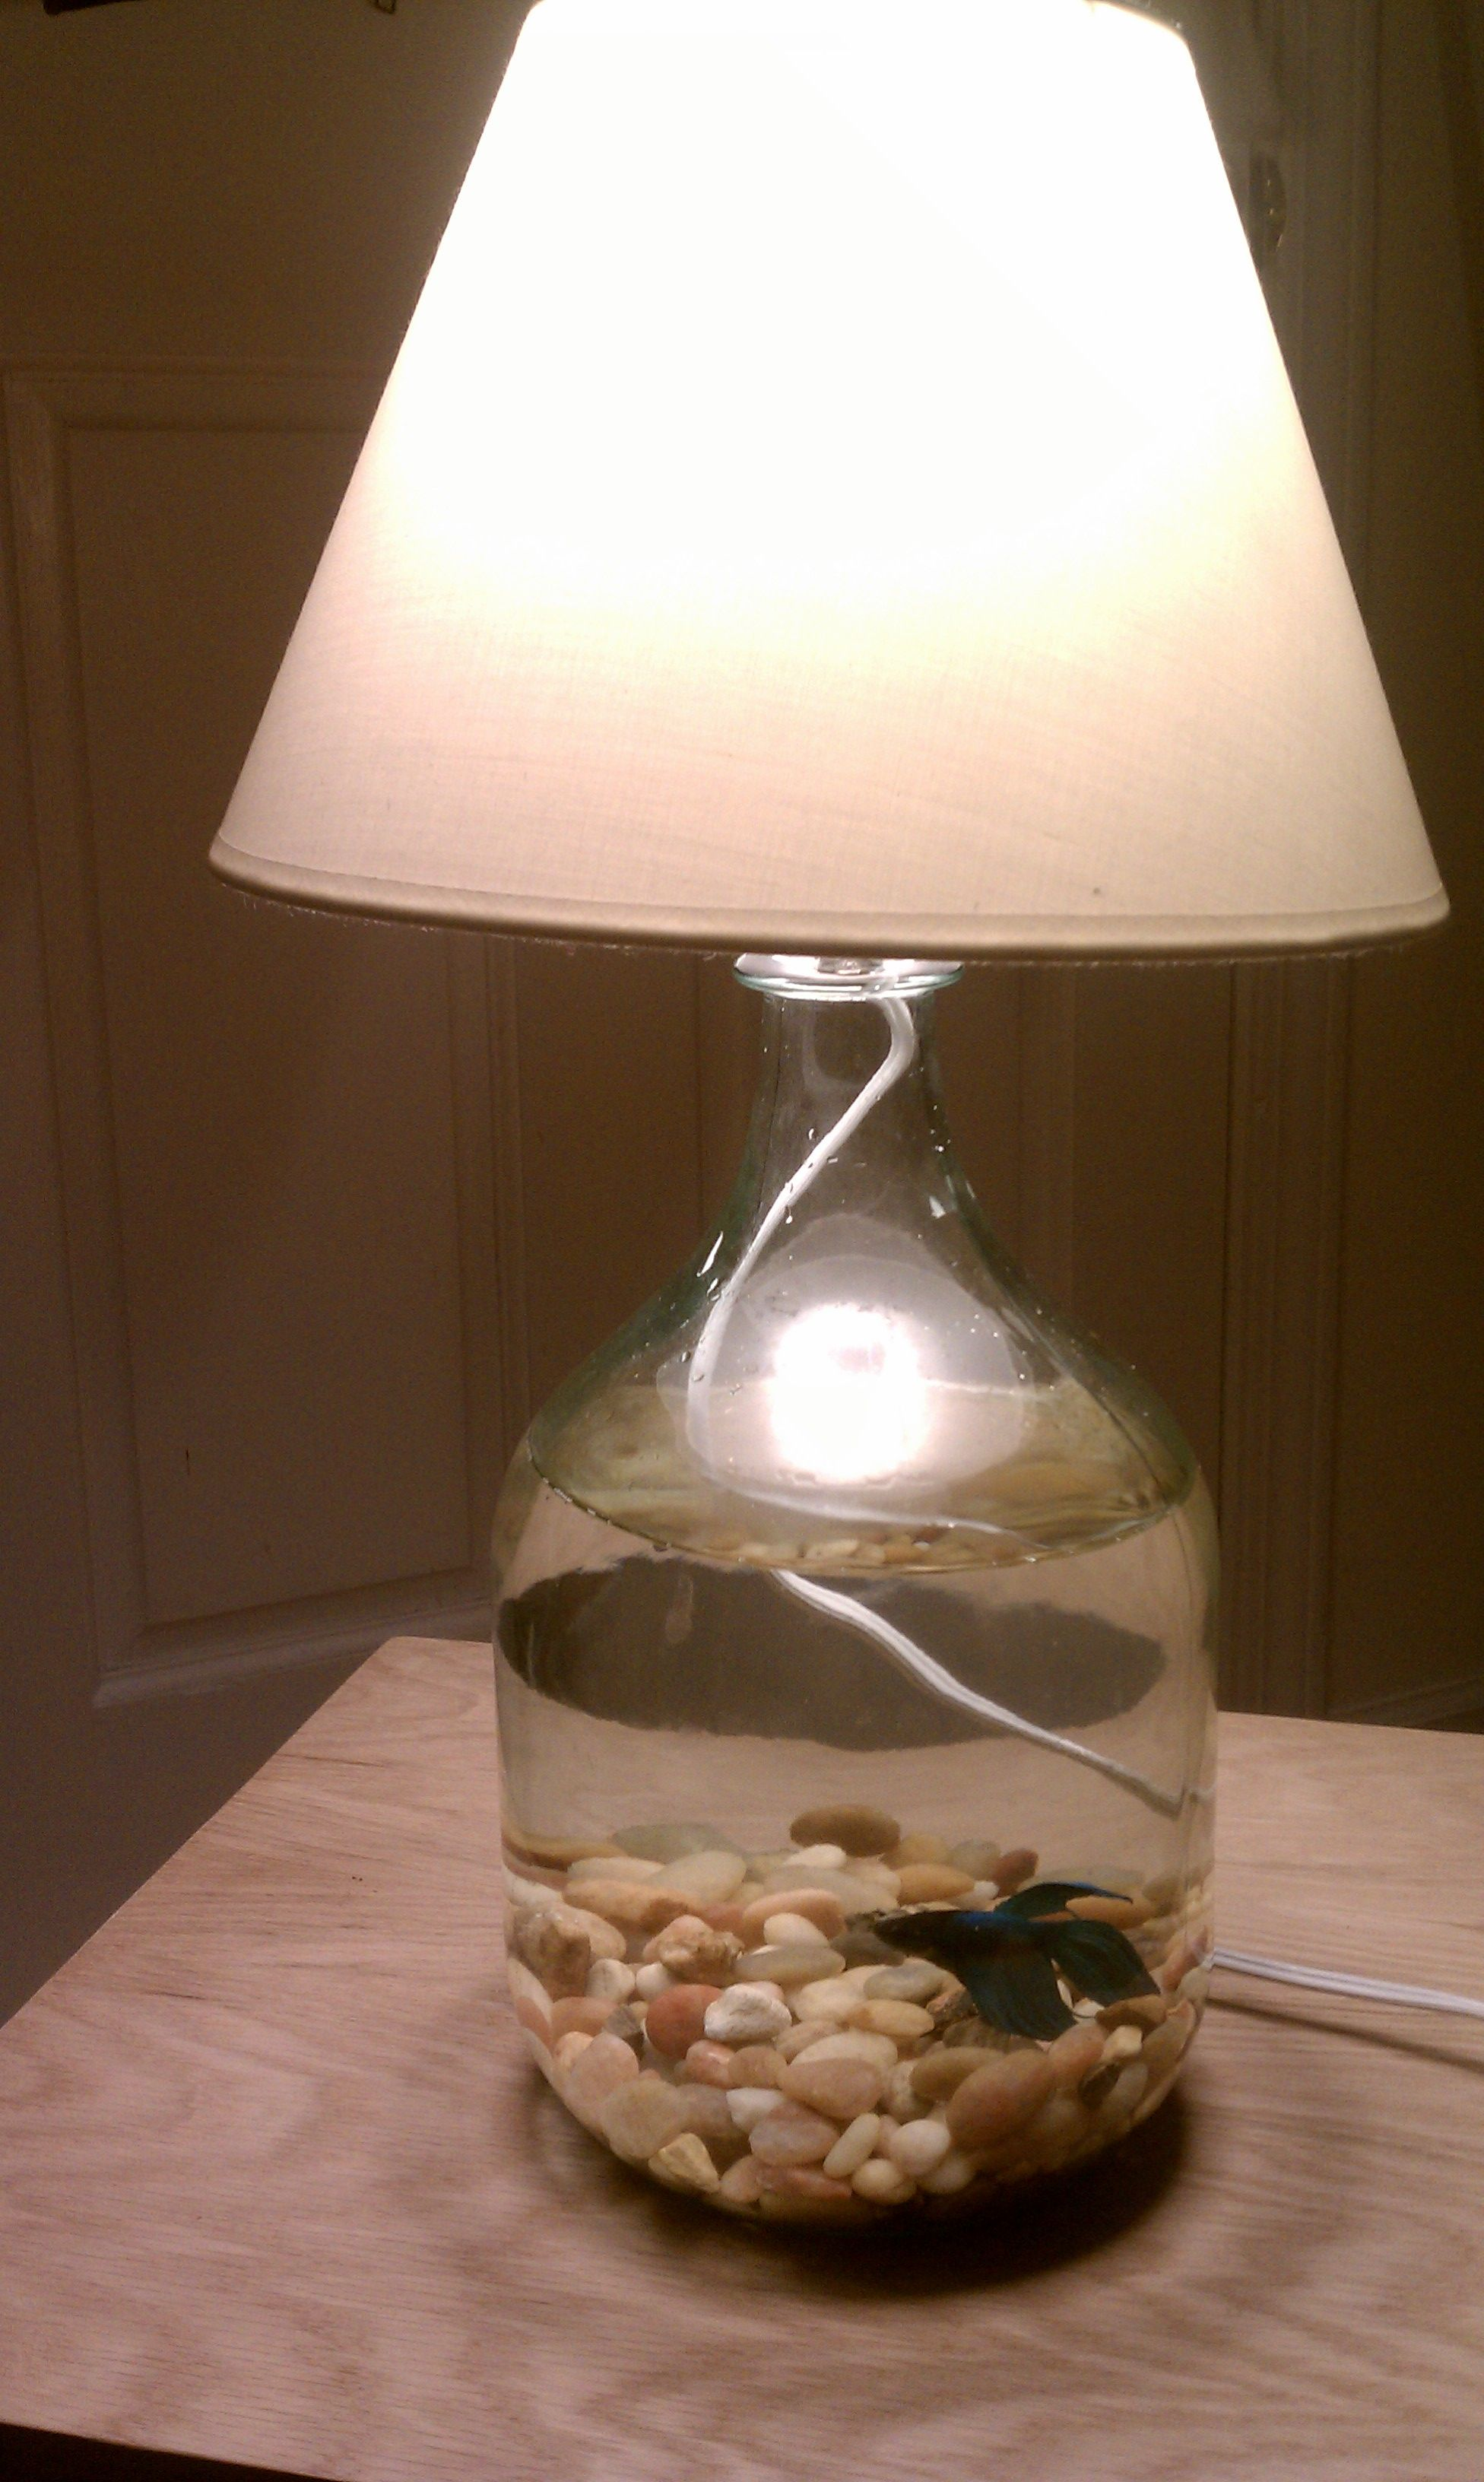 Fish bowl lamp I made from a wine jug! | DIY | Pinterest | Fish ...